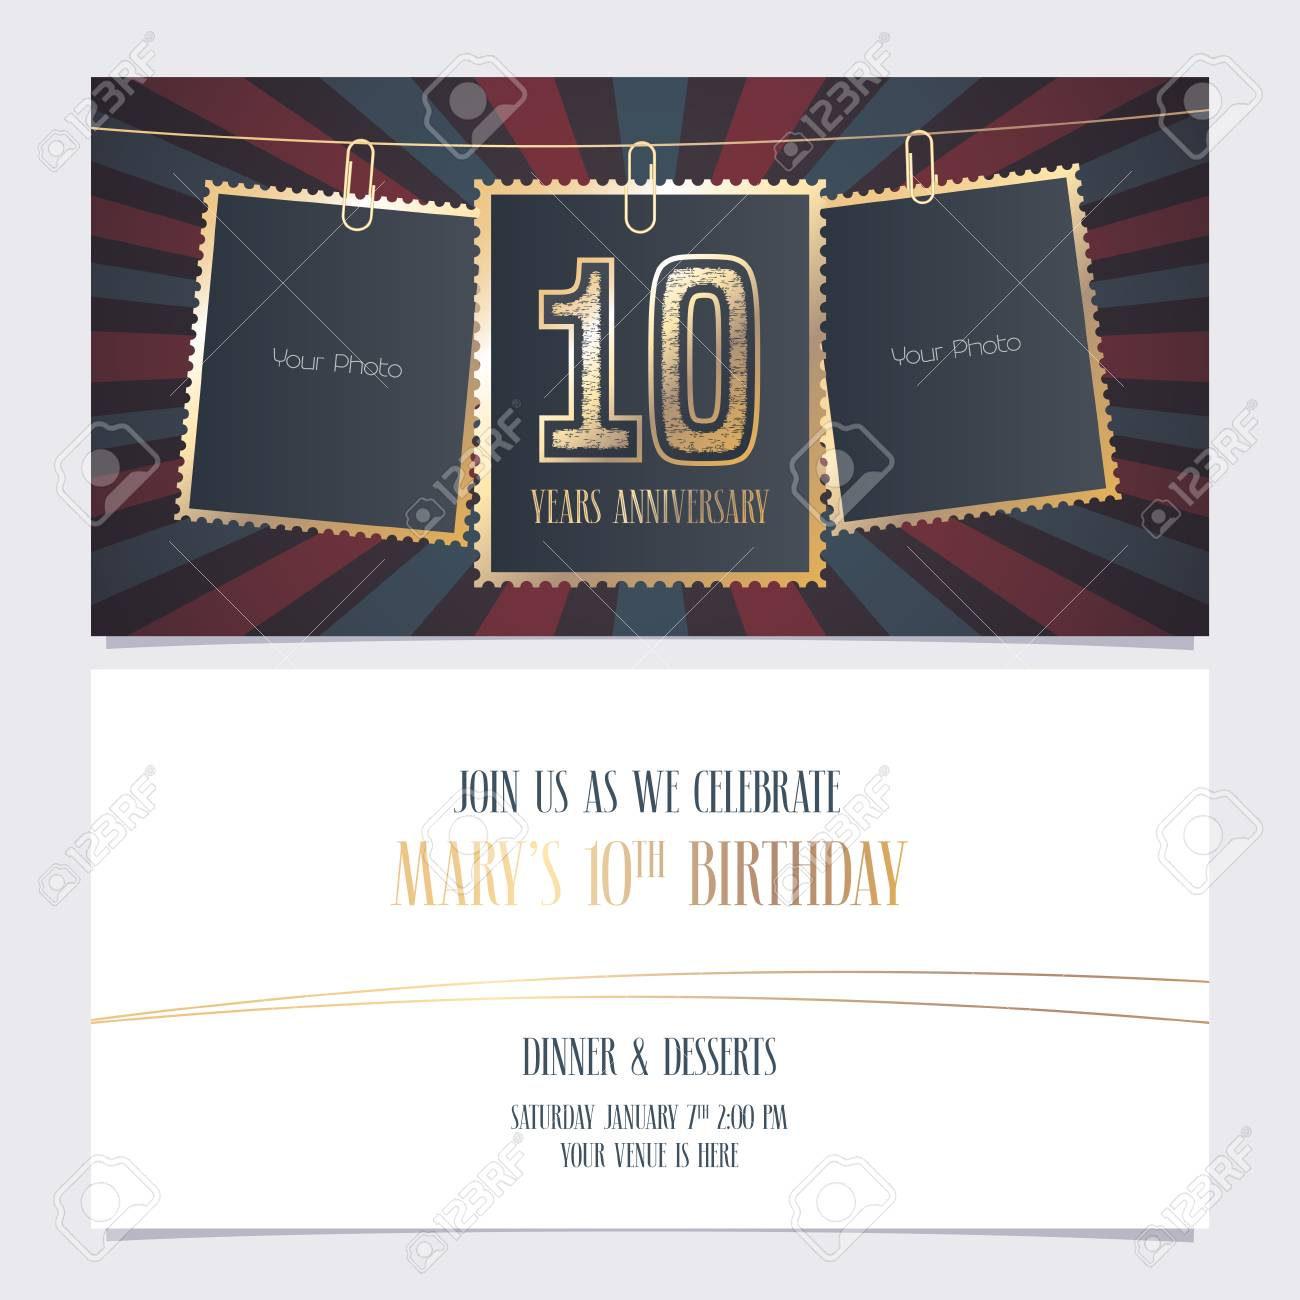 10 years anniversary party invitation vector template illustration